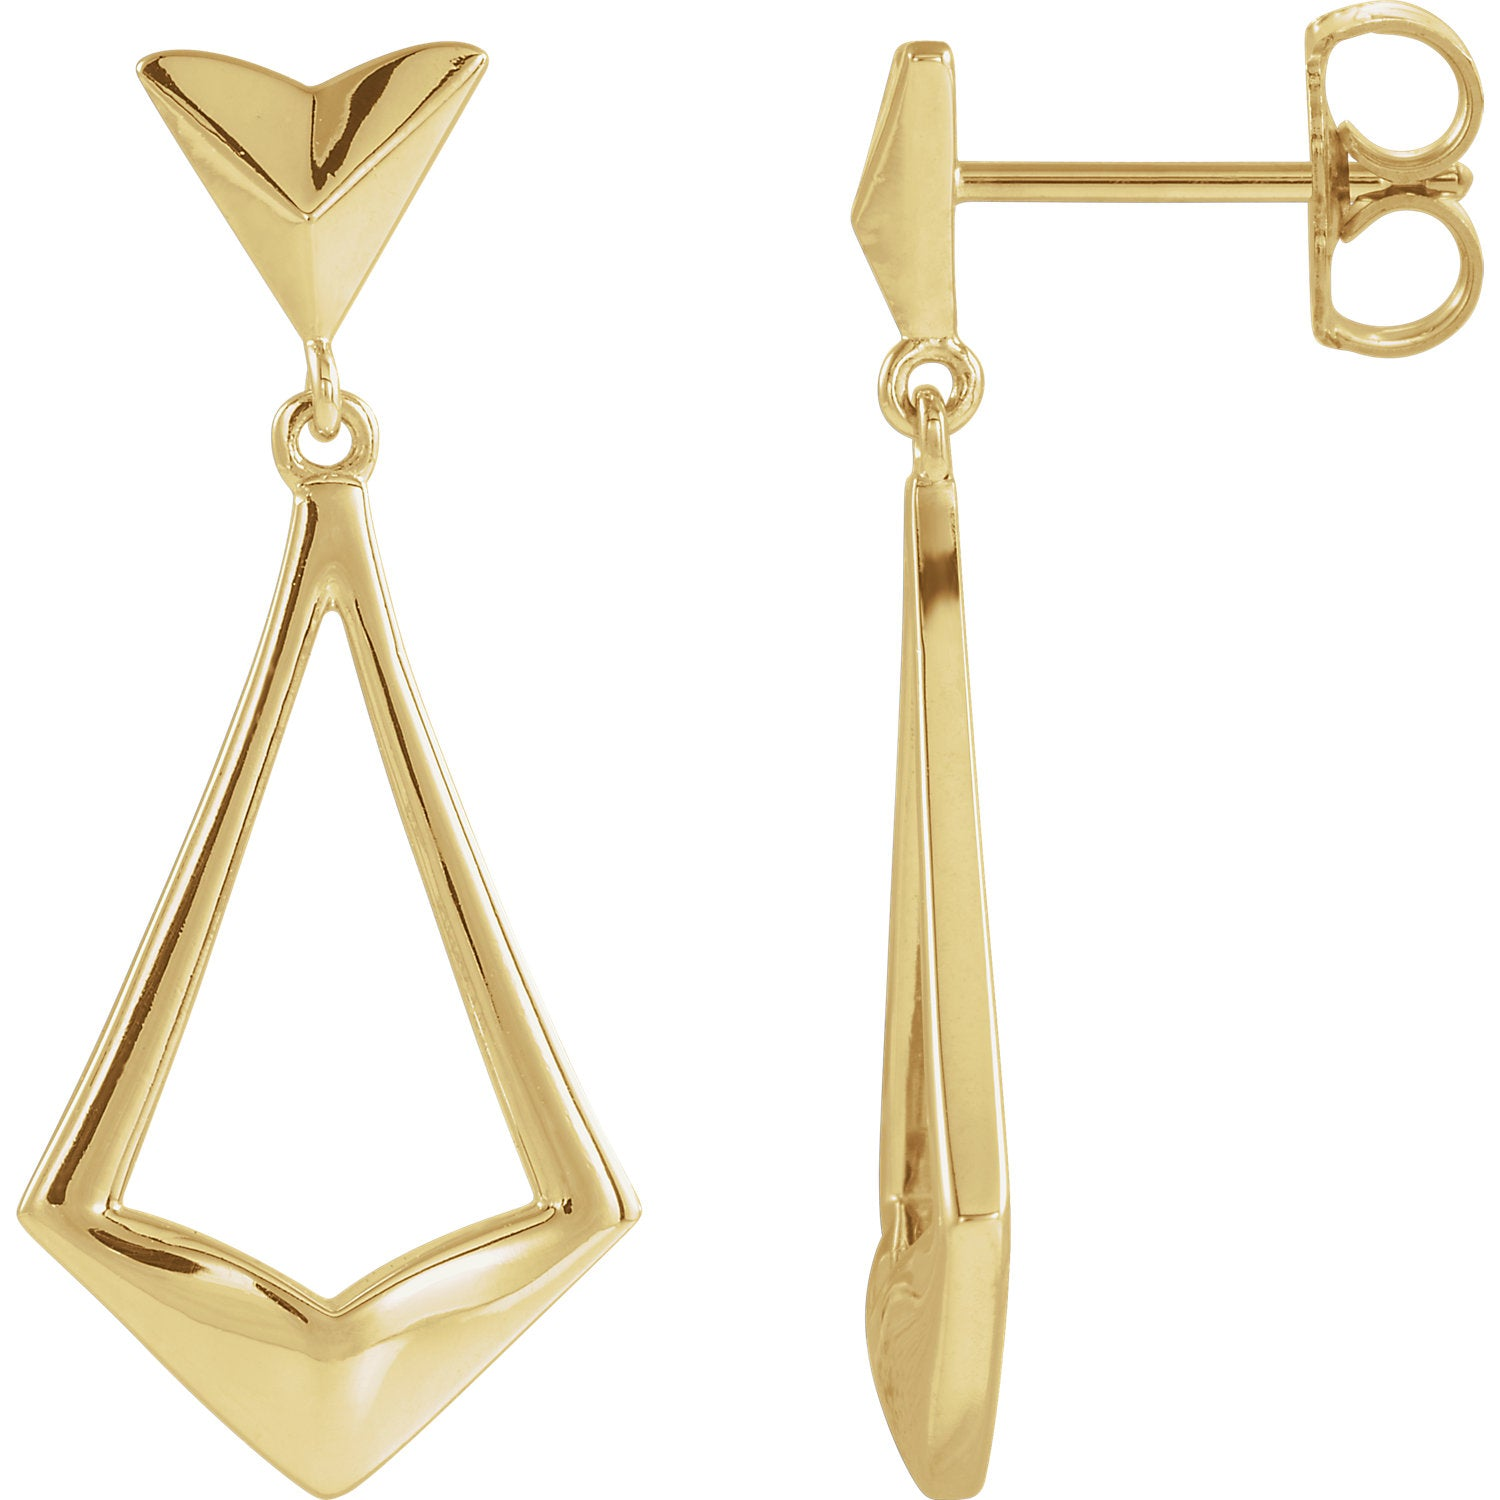 Geometric Dangle Earrings with Backs